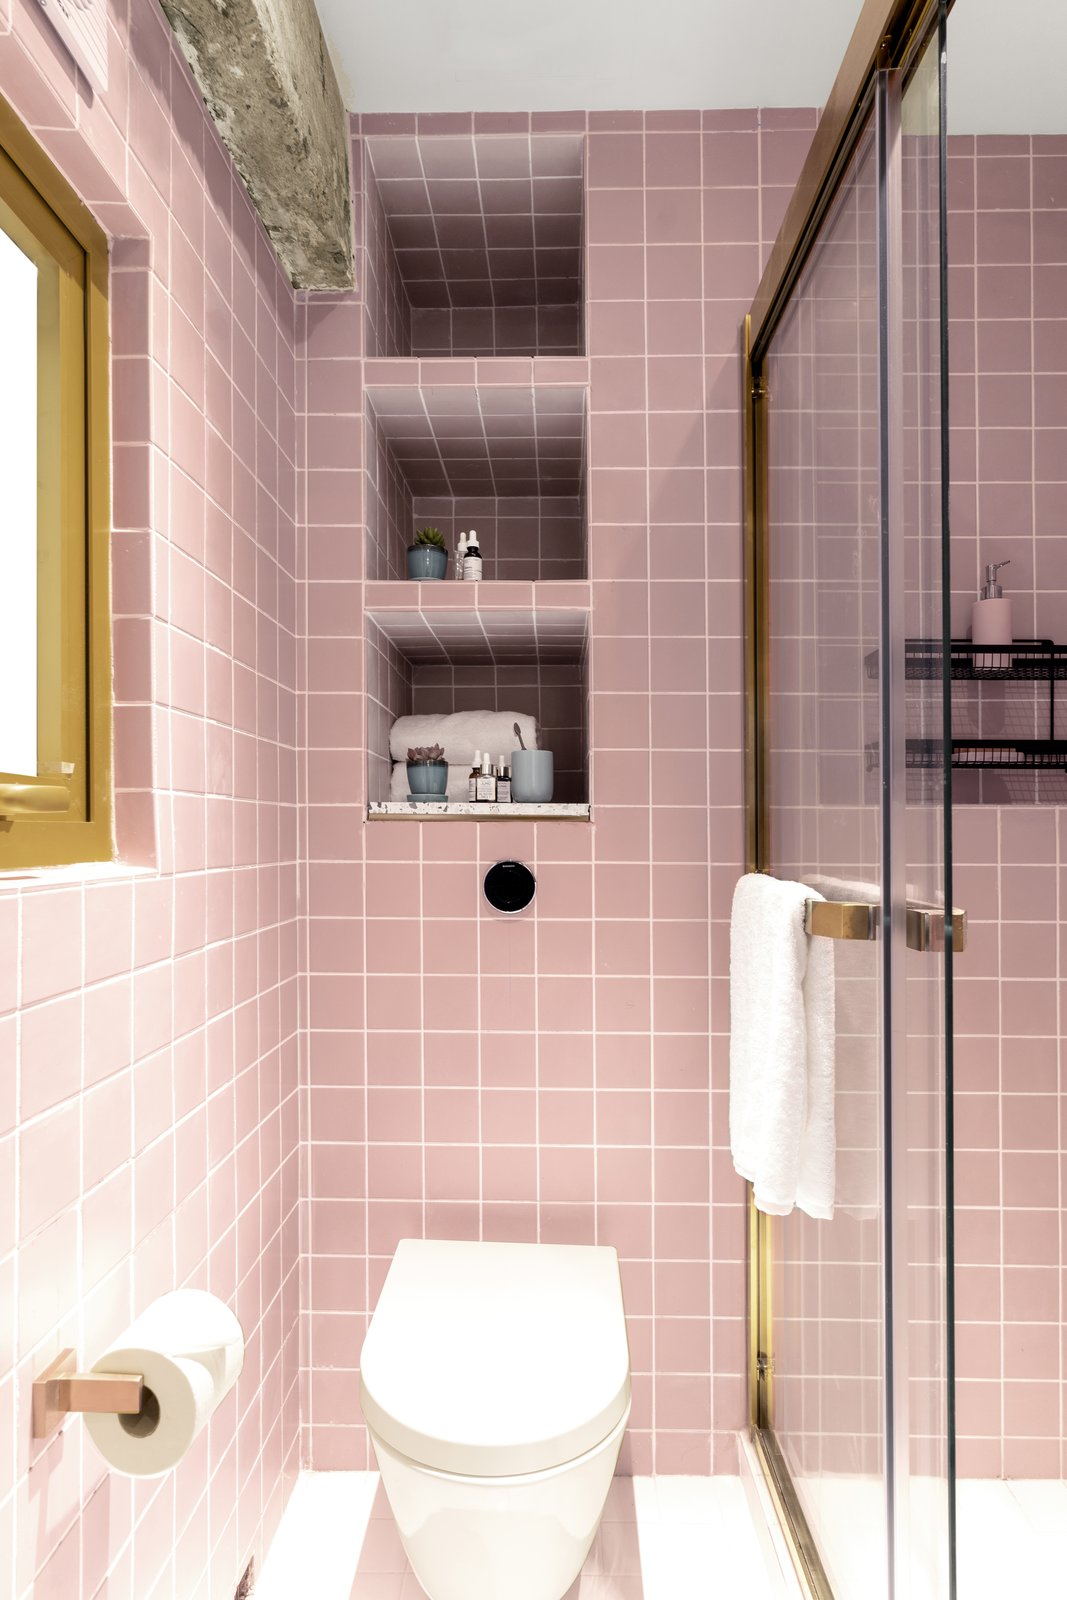 The Nate bathroom with pink tile